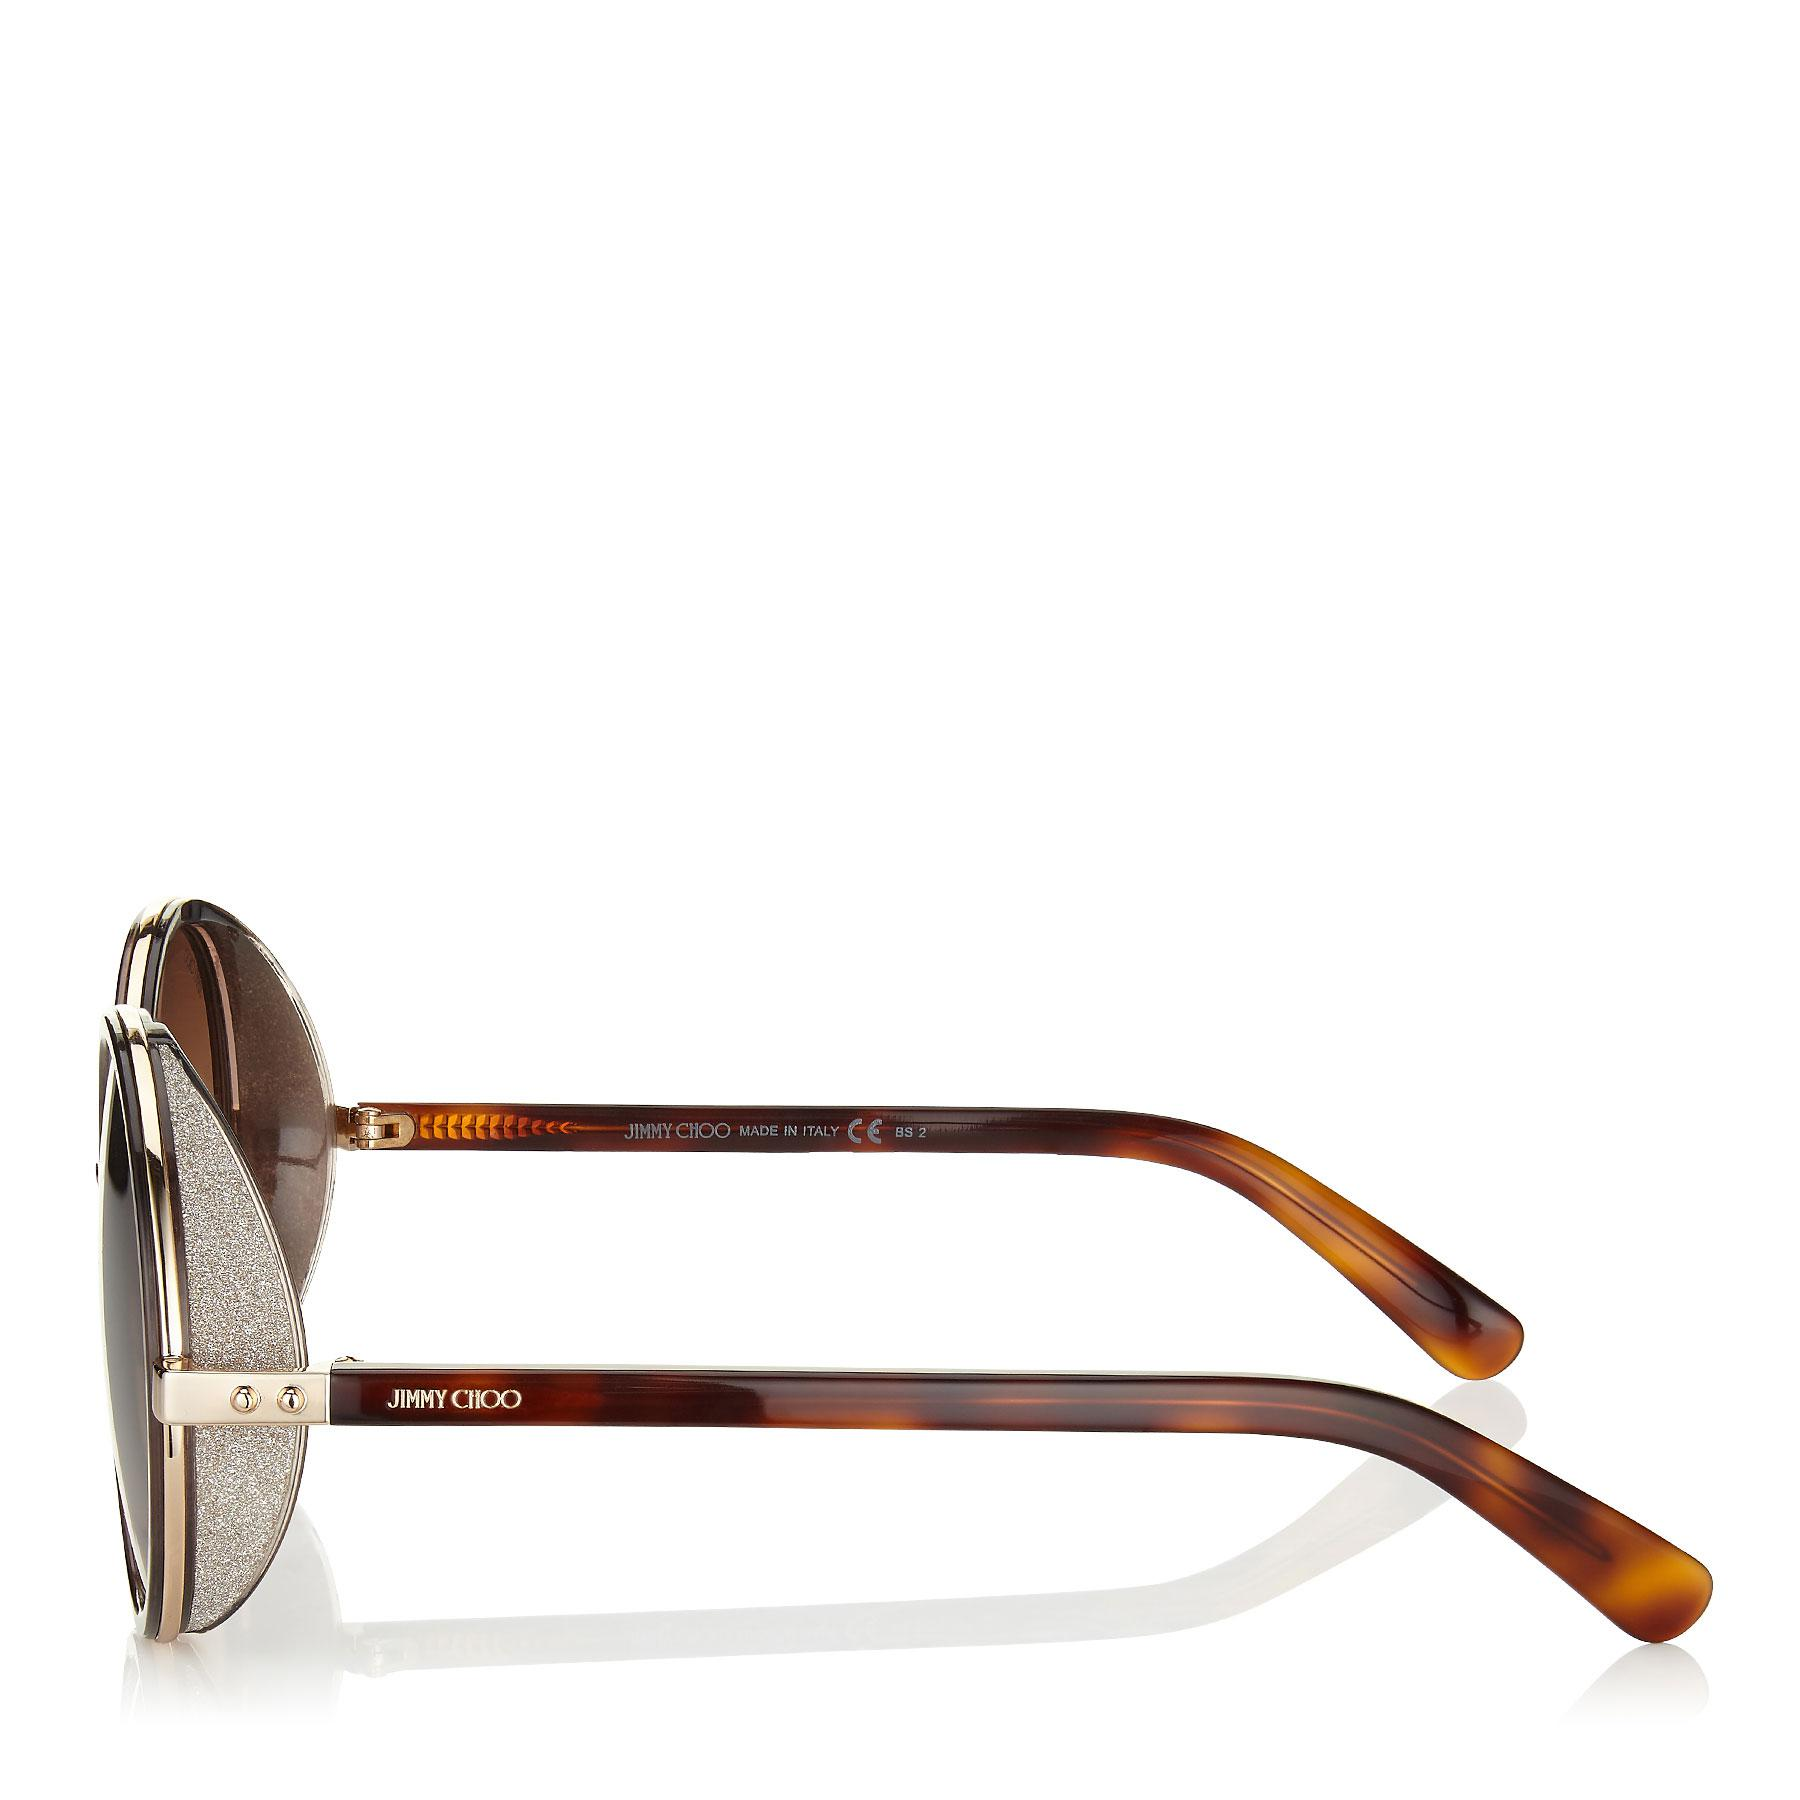 637556d55ed9 Jimmy Choo - Andie Havana Brown Acetate Round Framed Sunglasses With Gold  Silver Crystal Fabric Detailing. View fullscreen